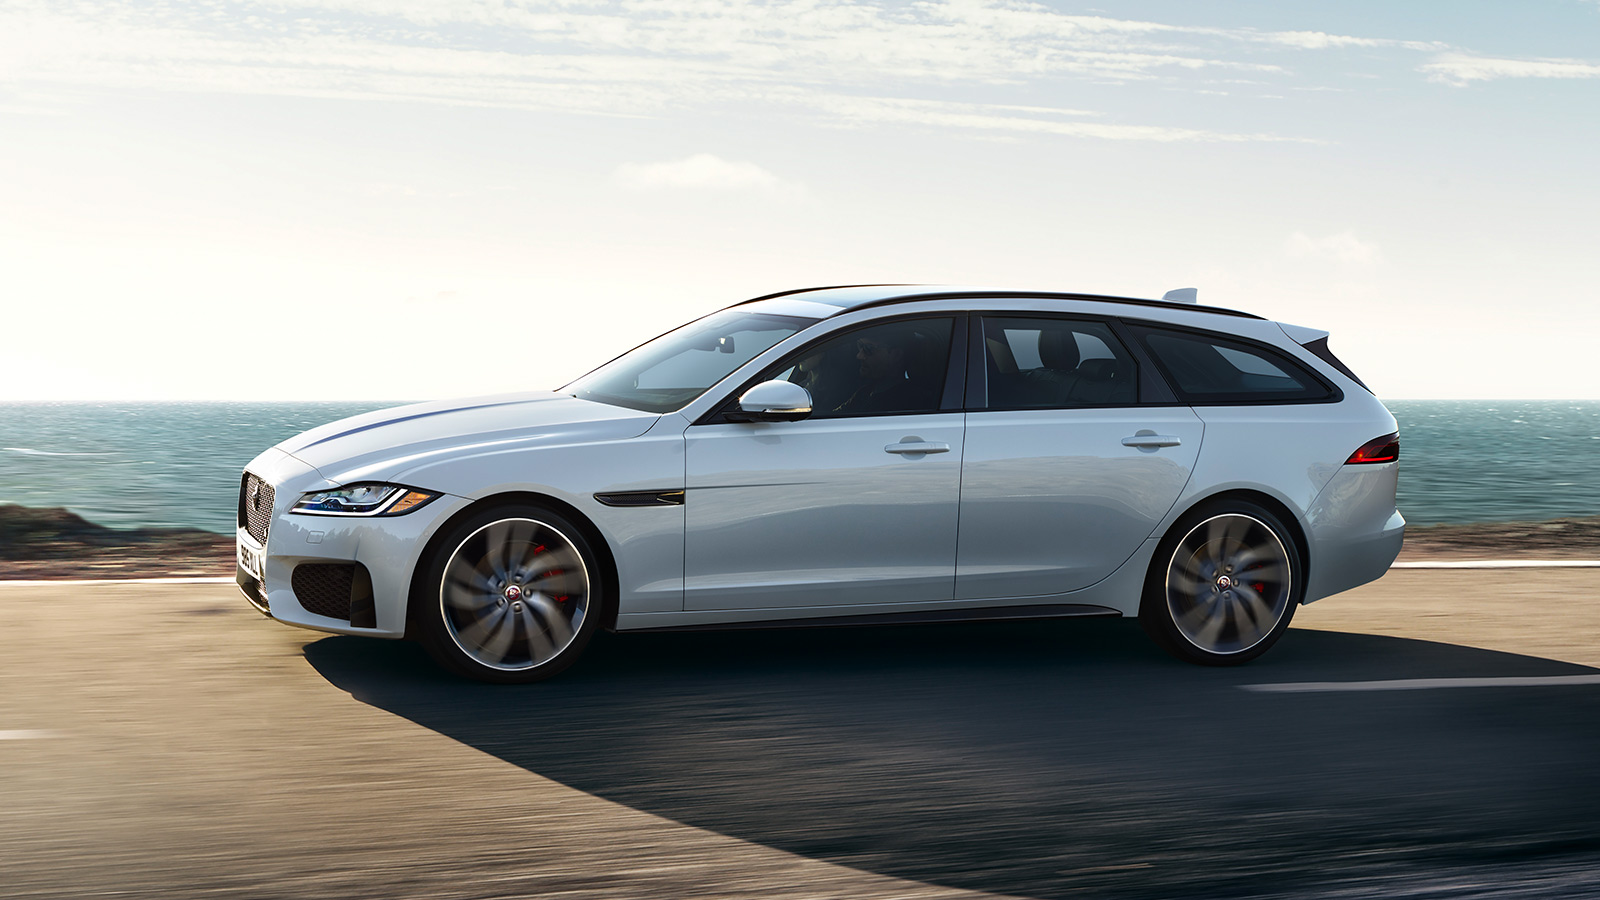 Side profile of Jaguar XF next to the sea.